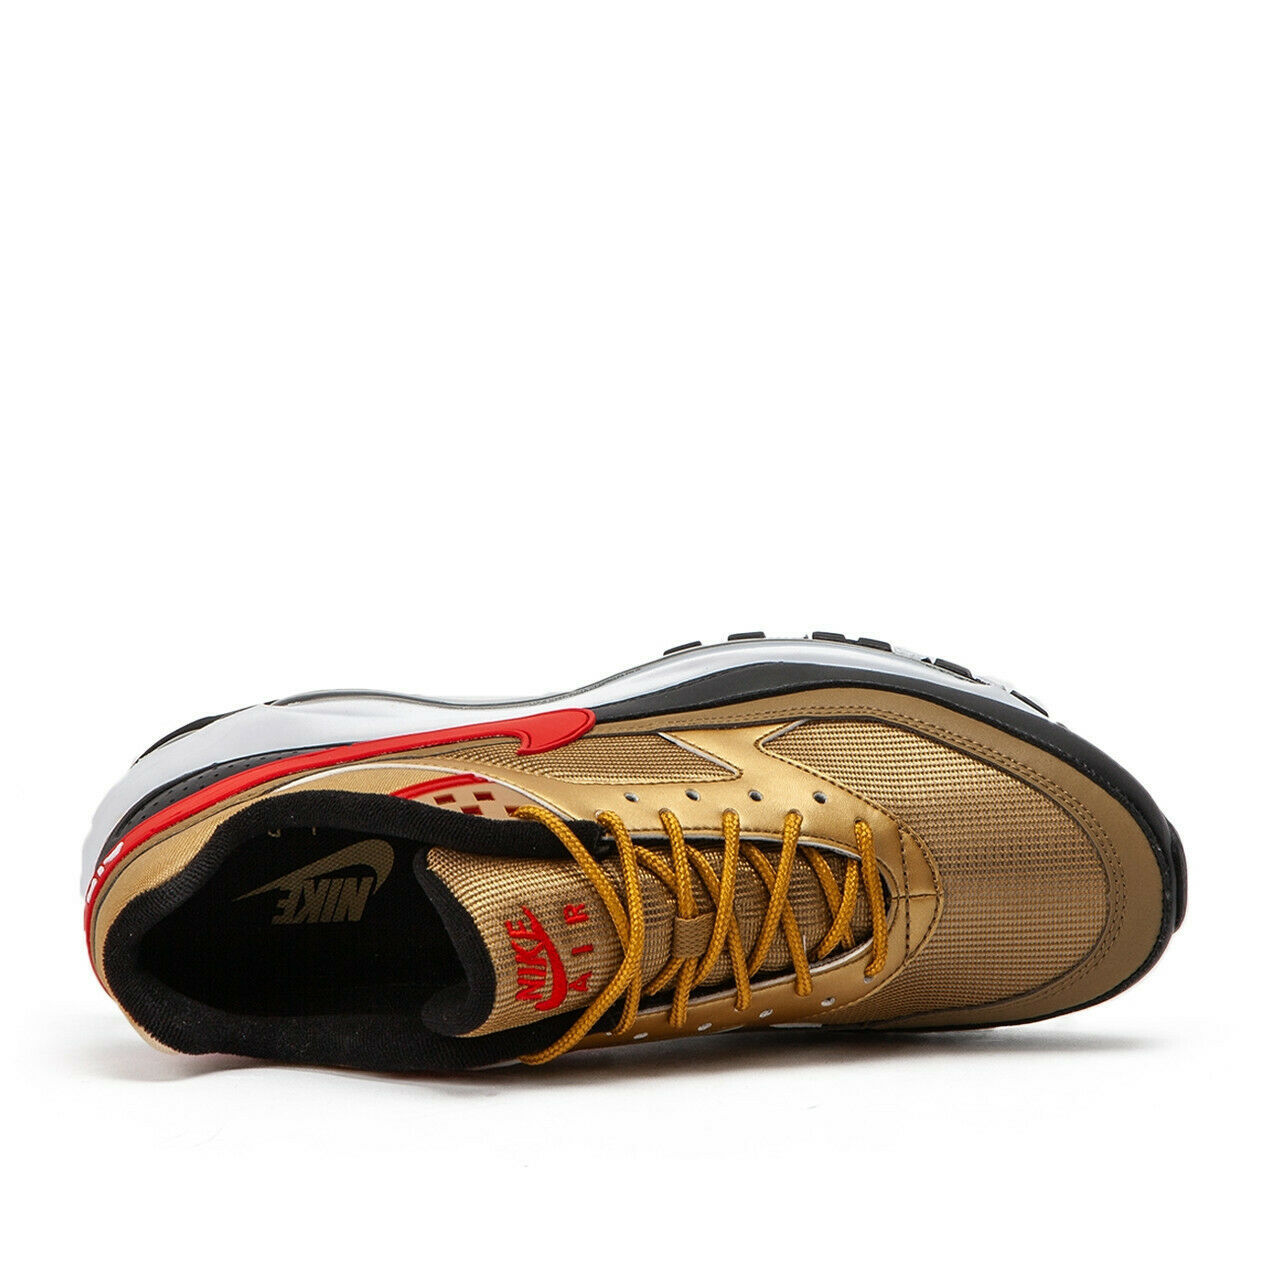 Nike Air Max 97 BW Metallic Gold Red Trainers image 10